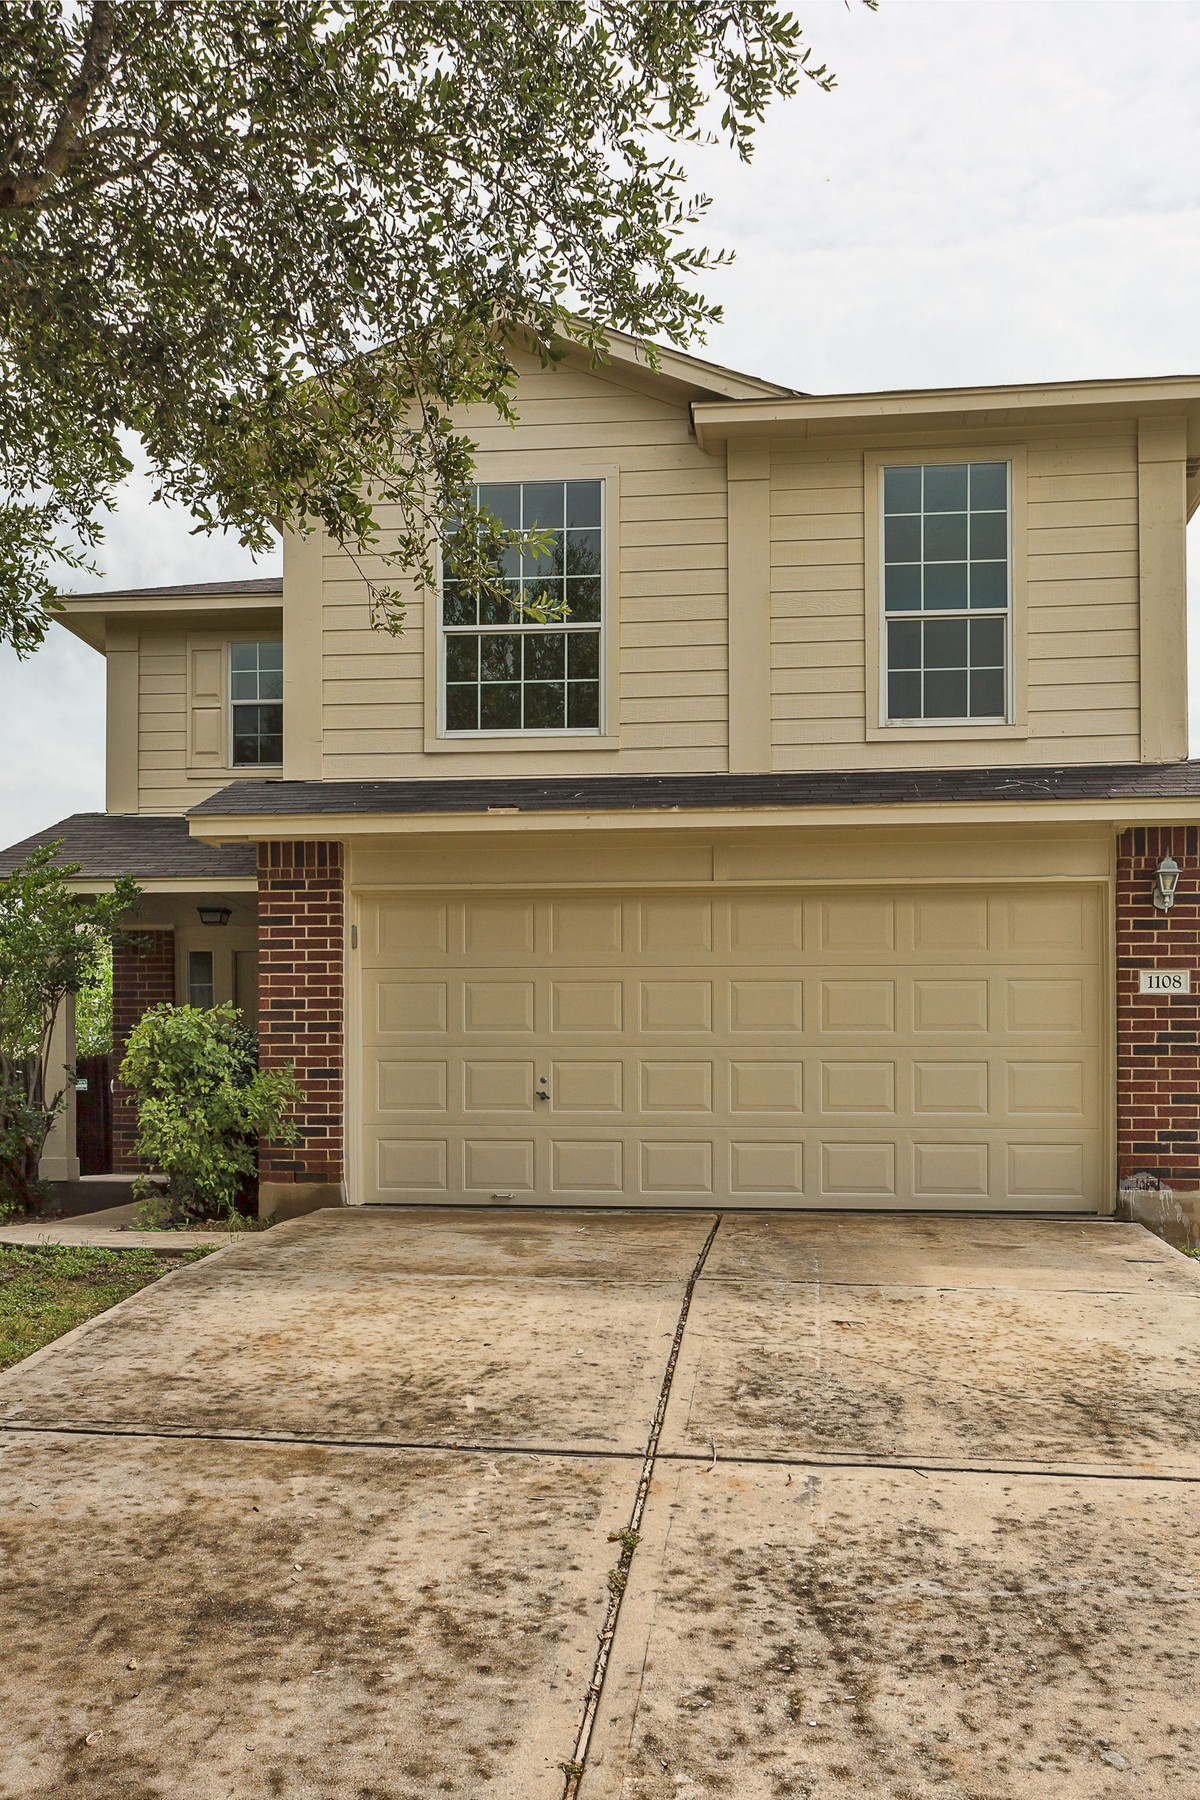 Single Family Home for Sale at Pristine Home in Gaston-Sheldon Pflugerville 1108 Battenburg Pflugerville, Texas 78660 United States